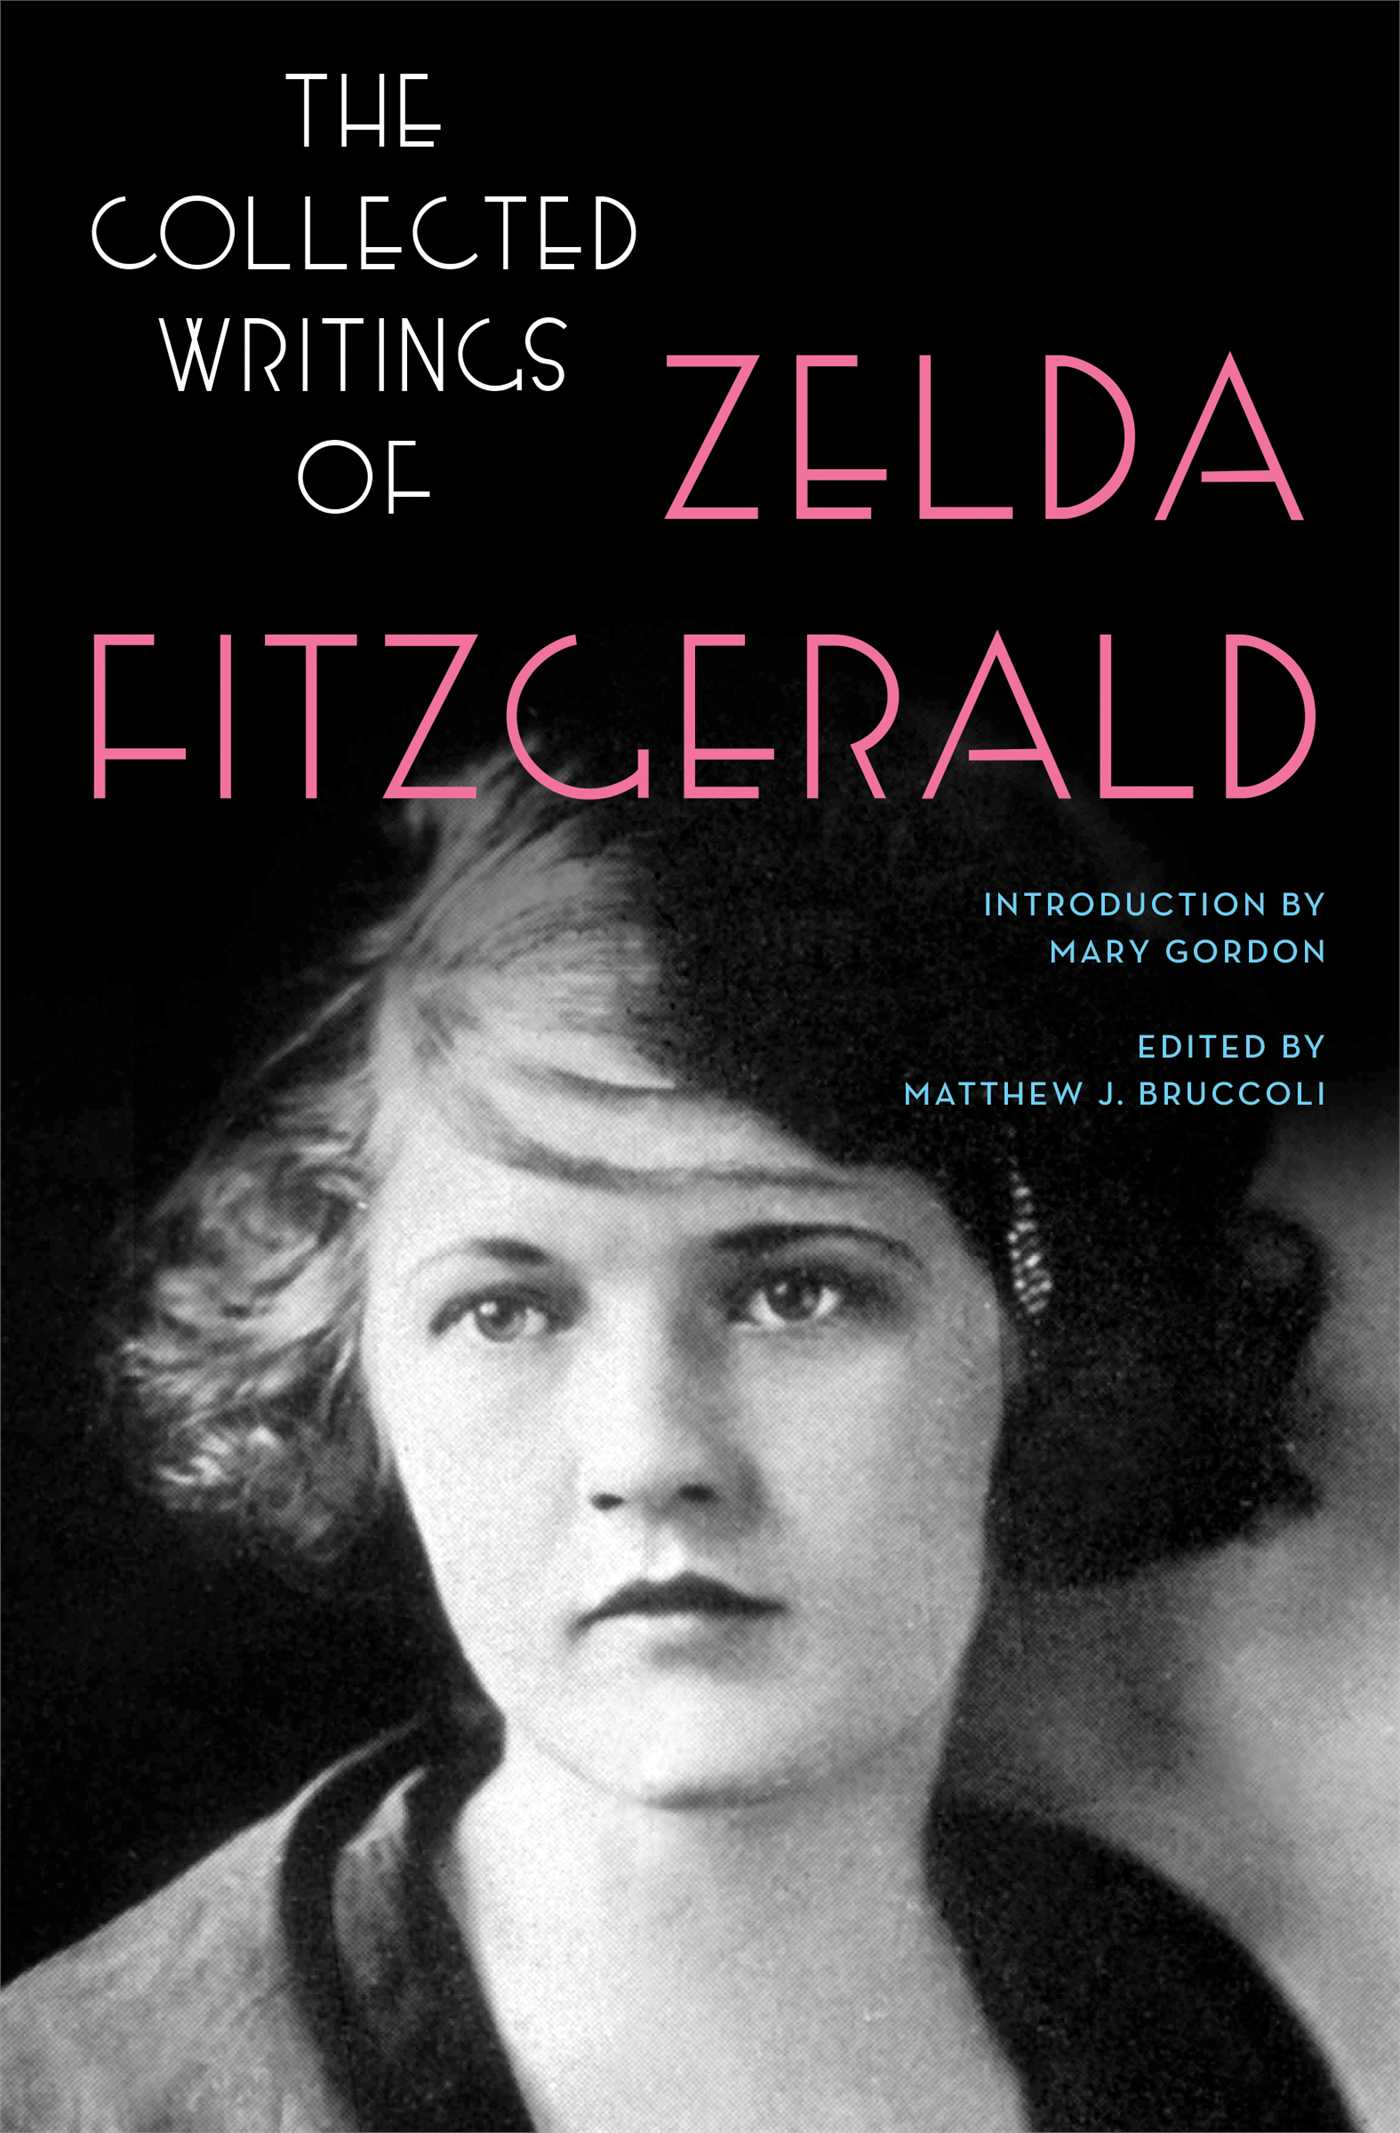 Collected-writings-of-zelda-fitzgerald-9781476758923_hr